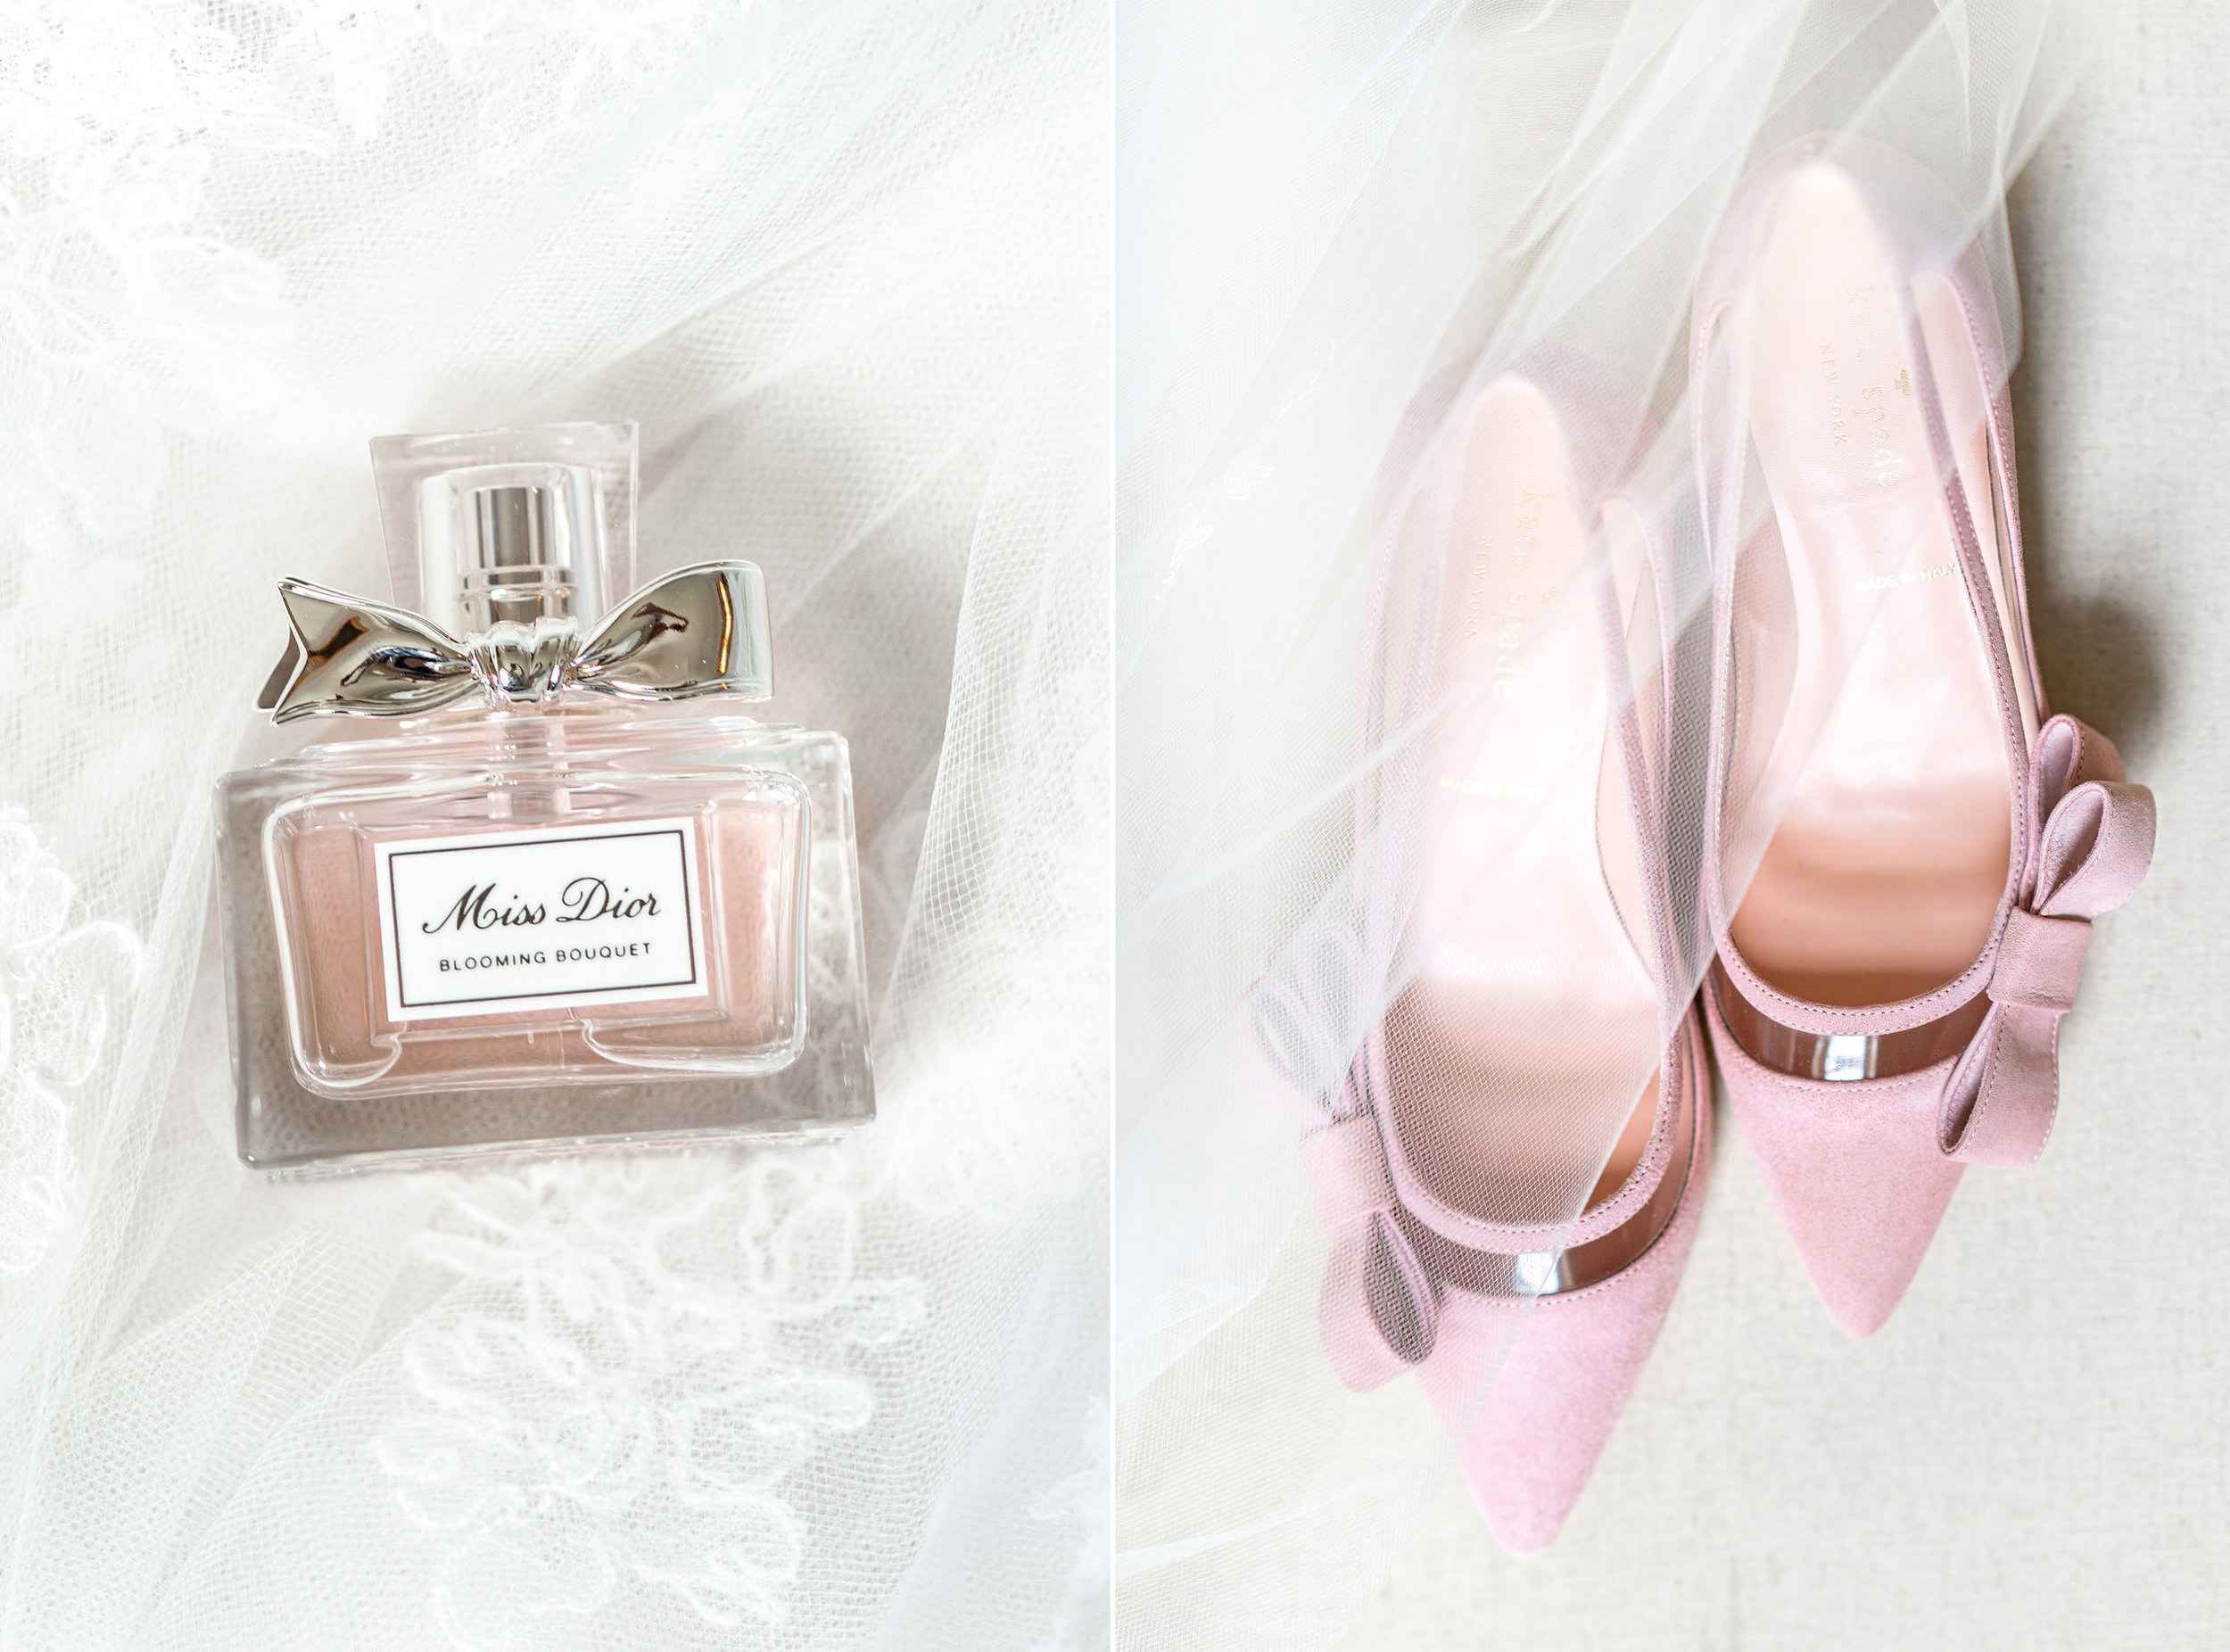 Miss Dior perfume and bridal veil from Lovely Bride and pink kate spade wedding shoes